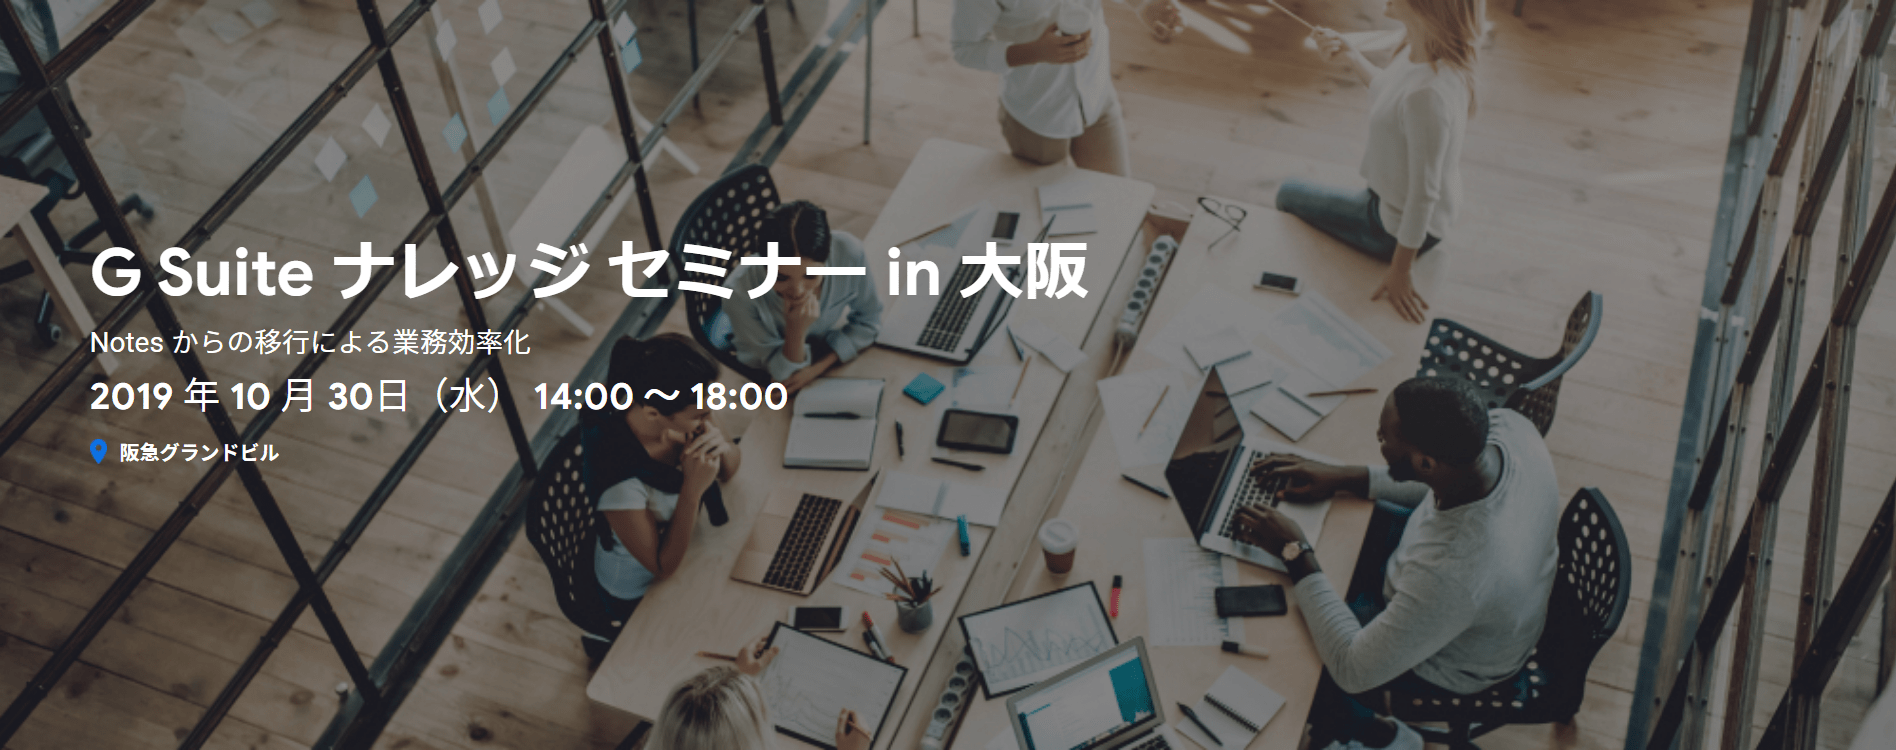 G Suite ナレッジ セミナー in 大阪